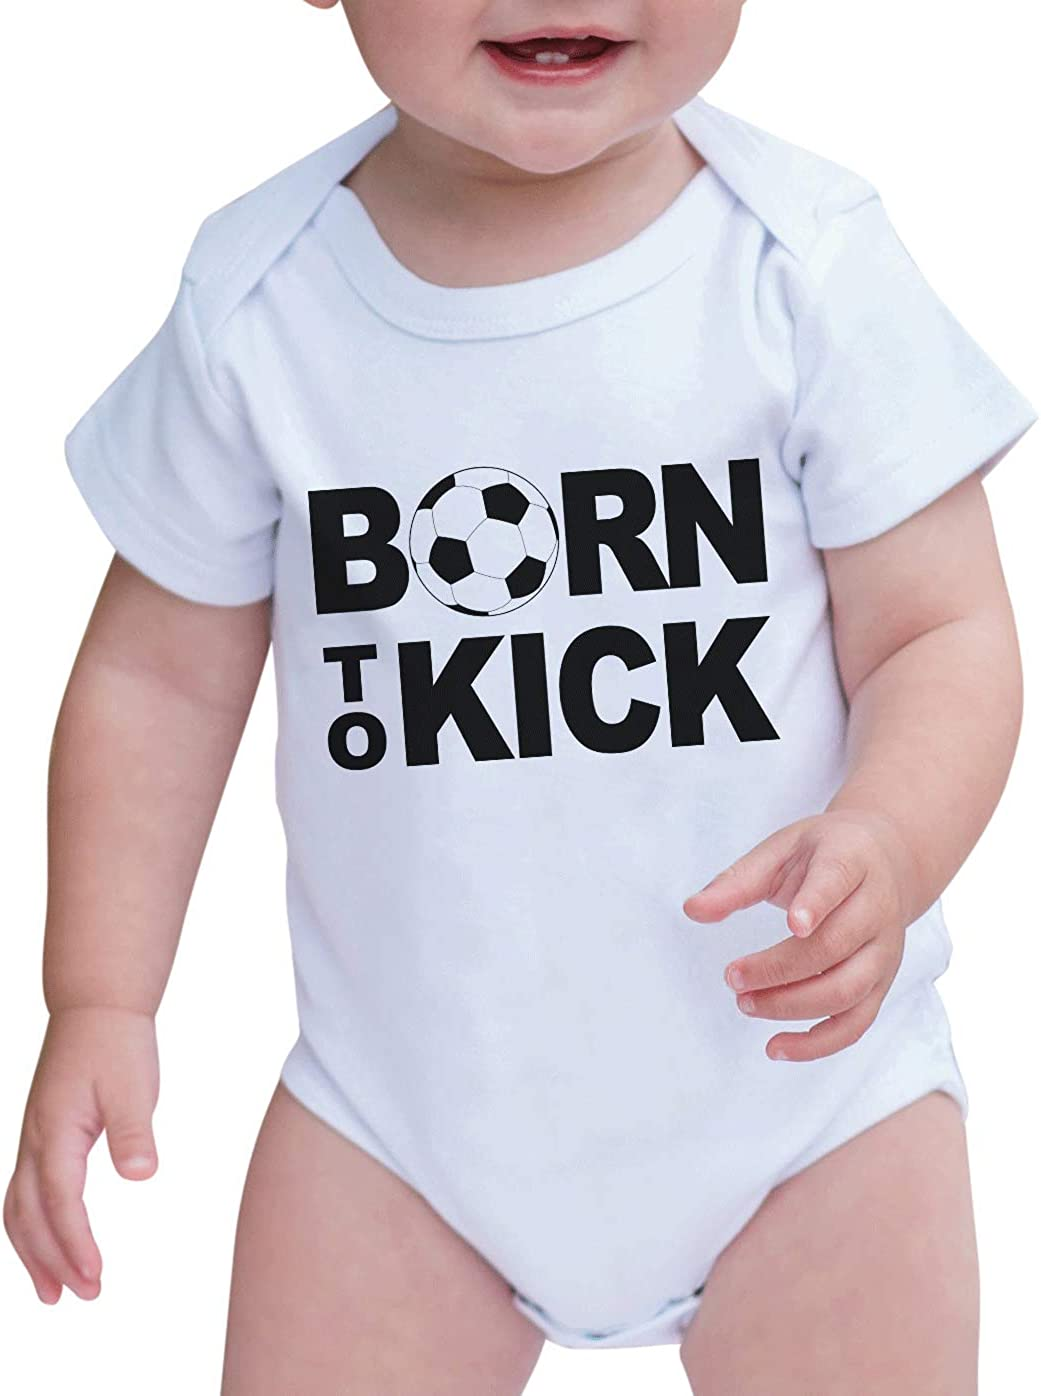 7 ate 9 Store Apparel Baby Free shipping / New Kick Born Onepiece to Boy's